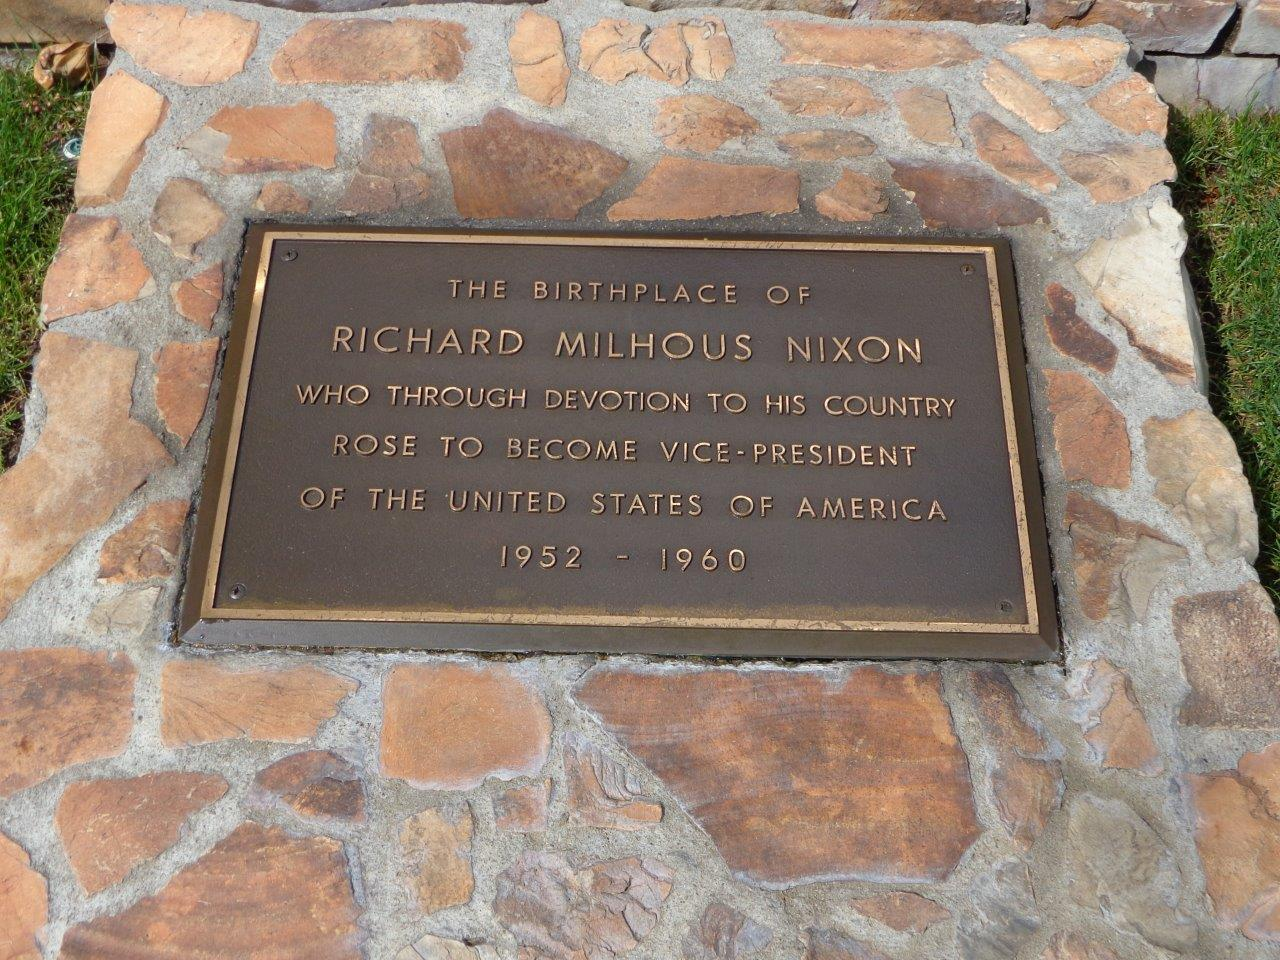 Richard Nixon birthplace historical marker